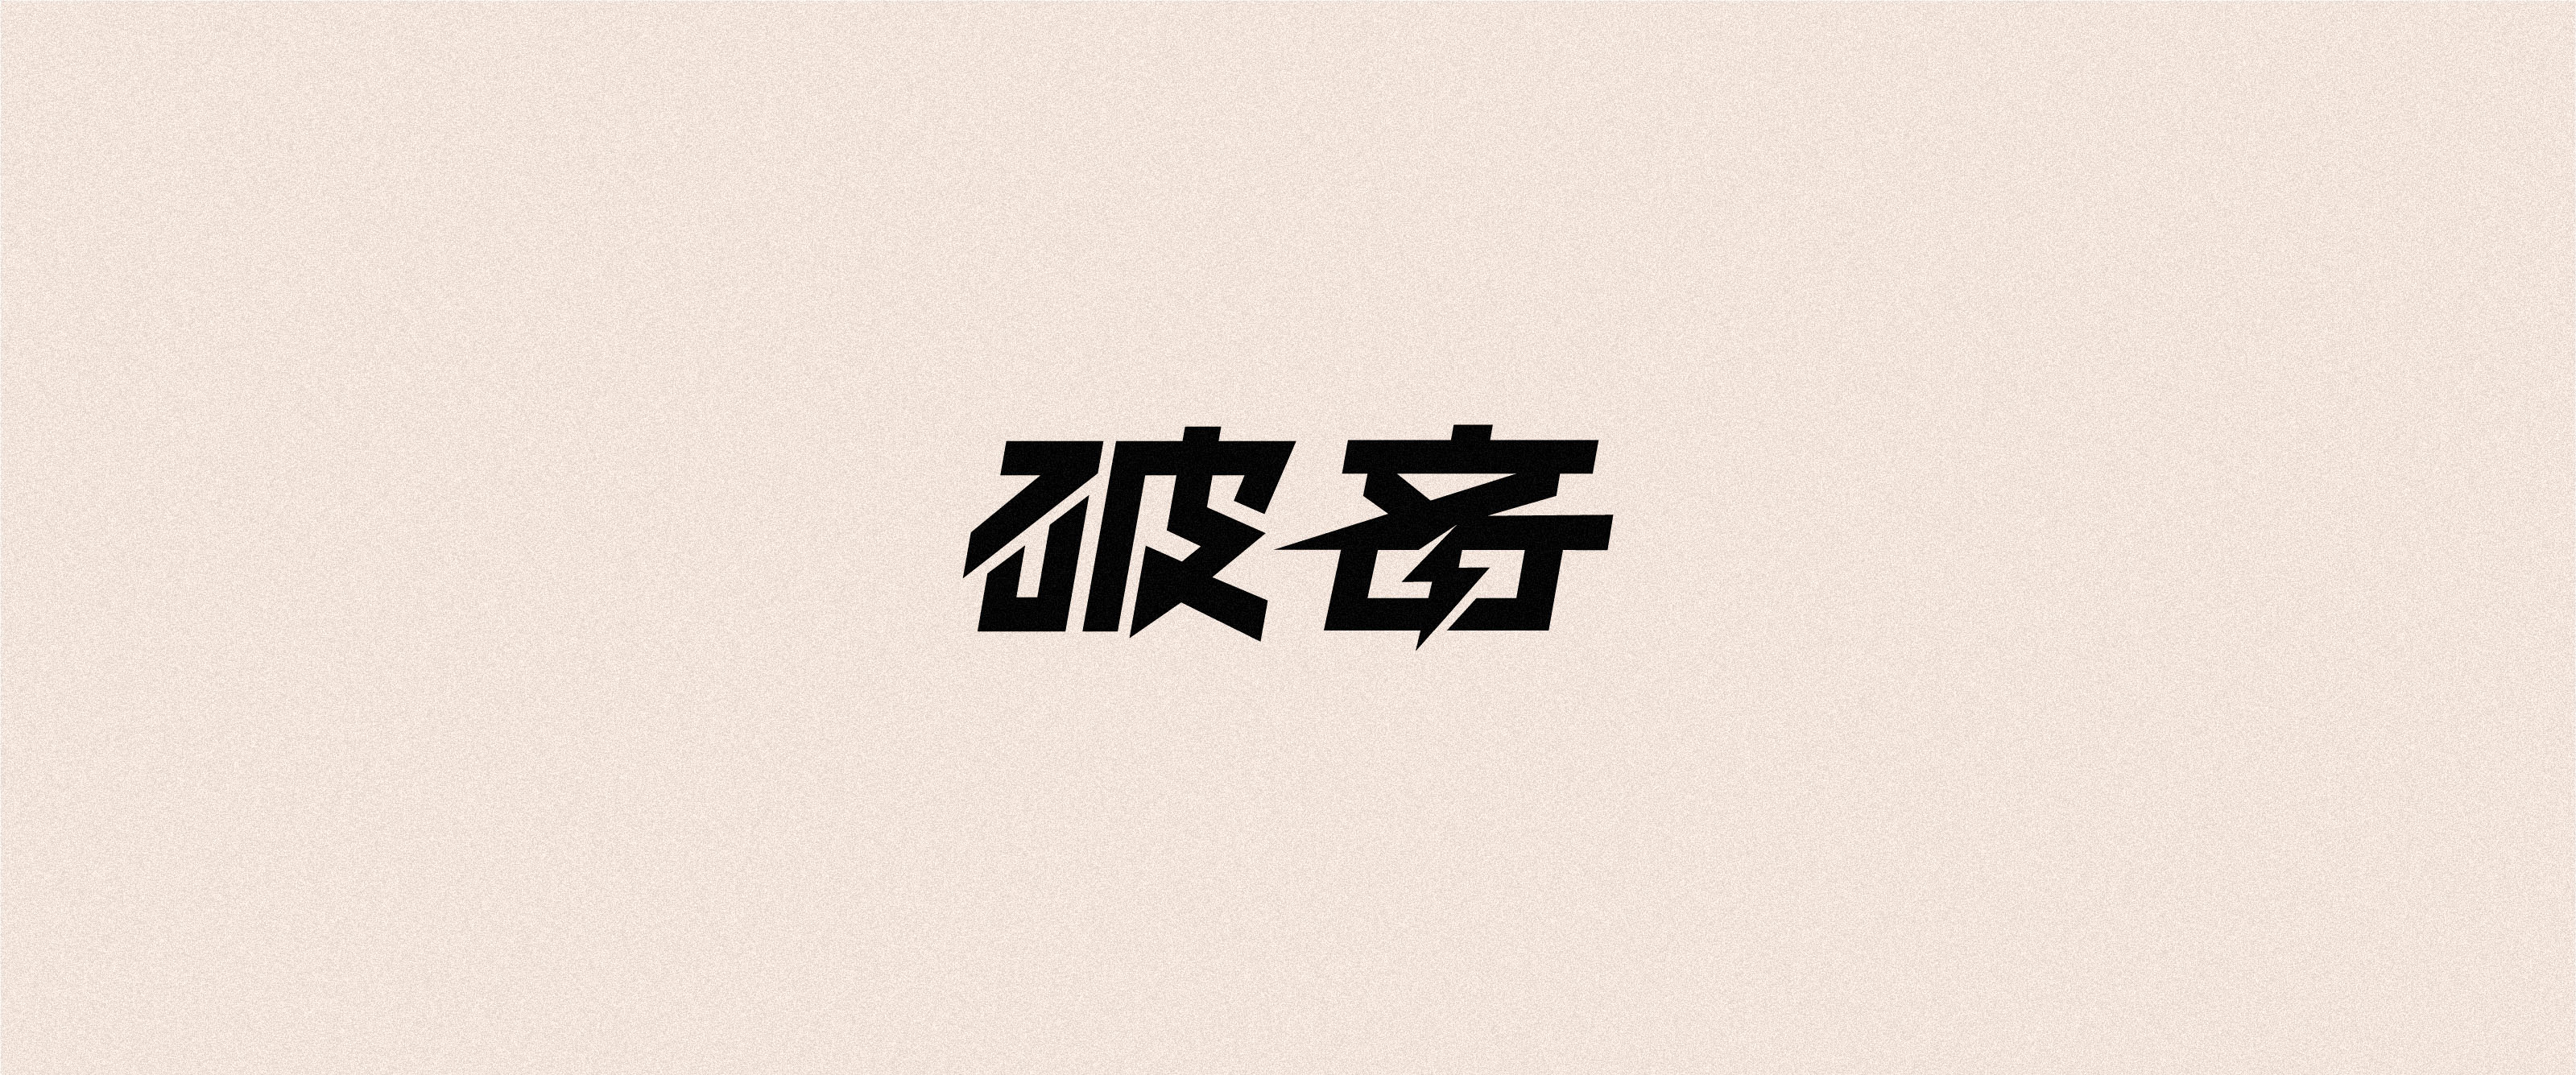 33P Chinese font design collection inspiration #.402